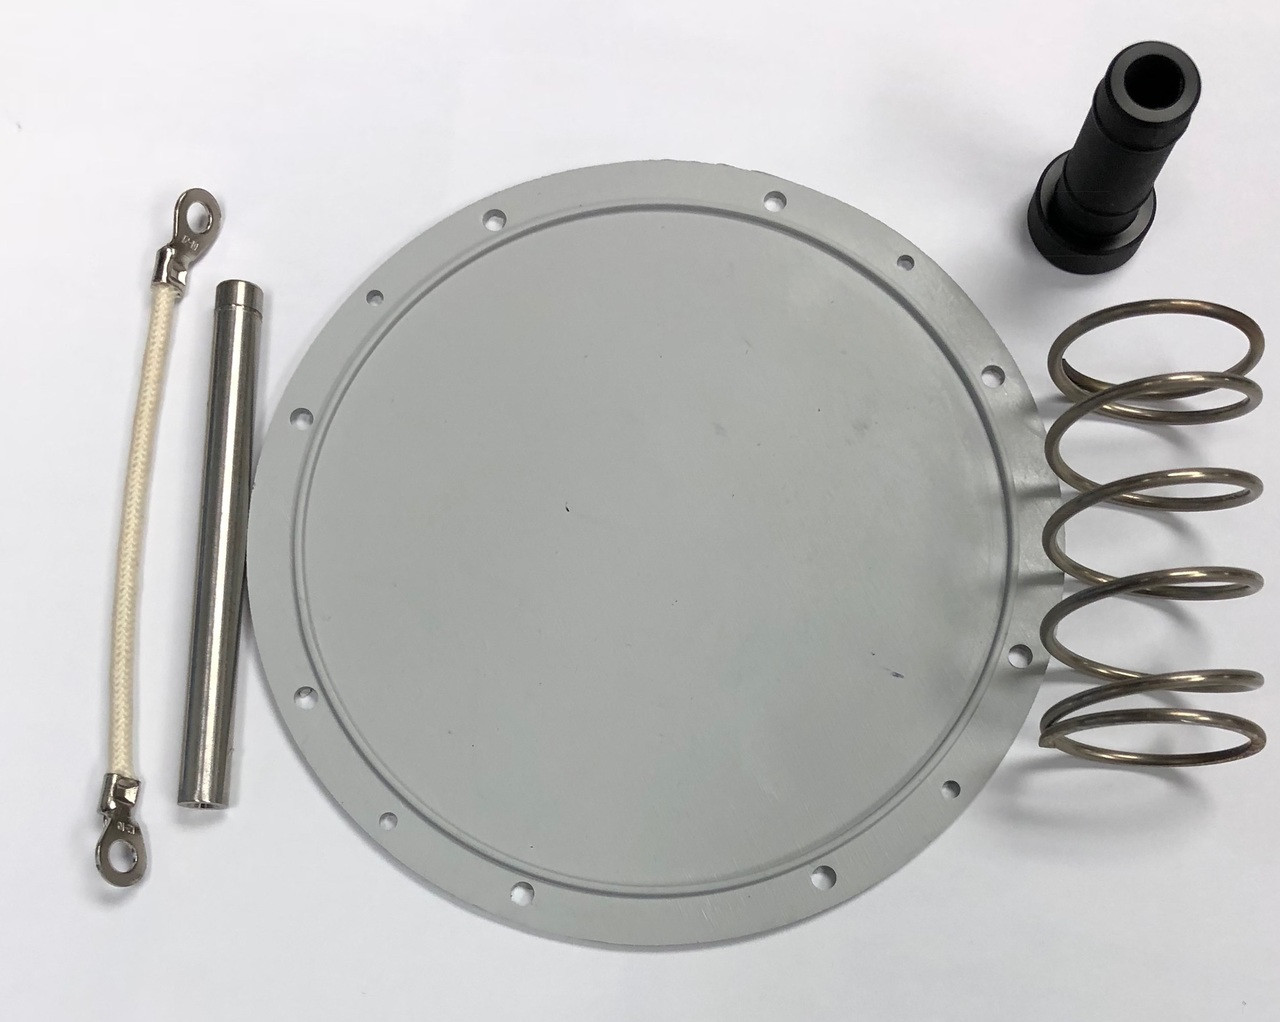 MiniPack Sealing Bar Bladder Rebuilding Kit - ME450RBL